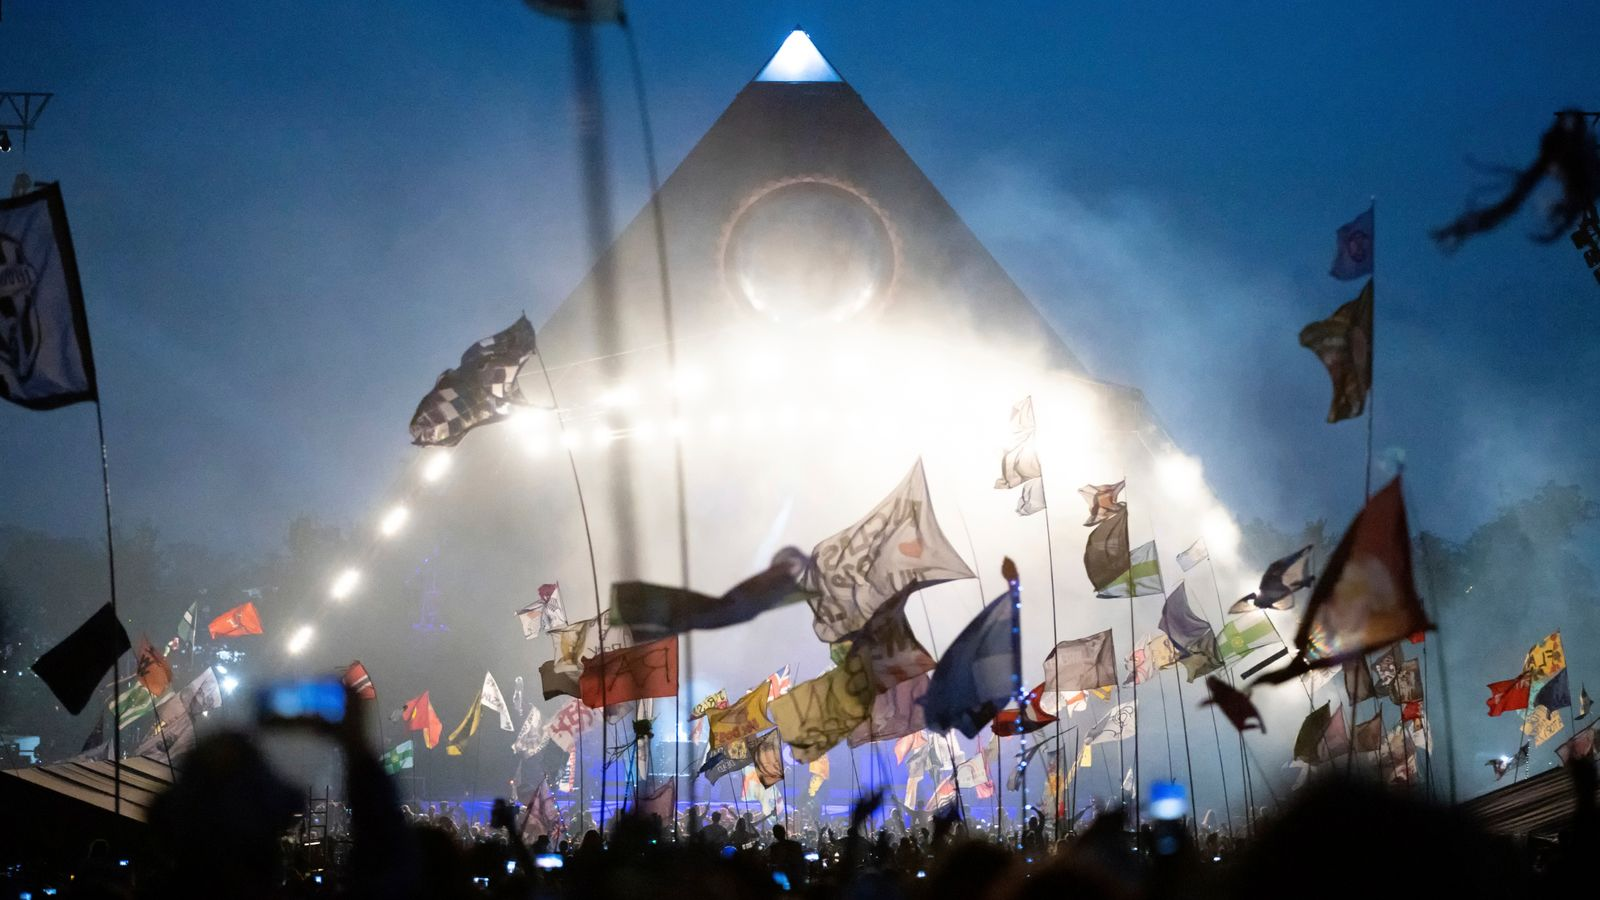 Glastonbury music festival cancelled, organisers say